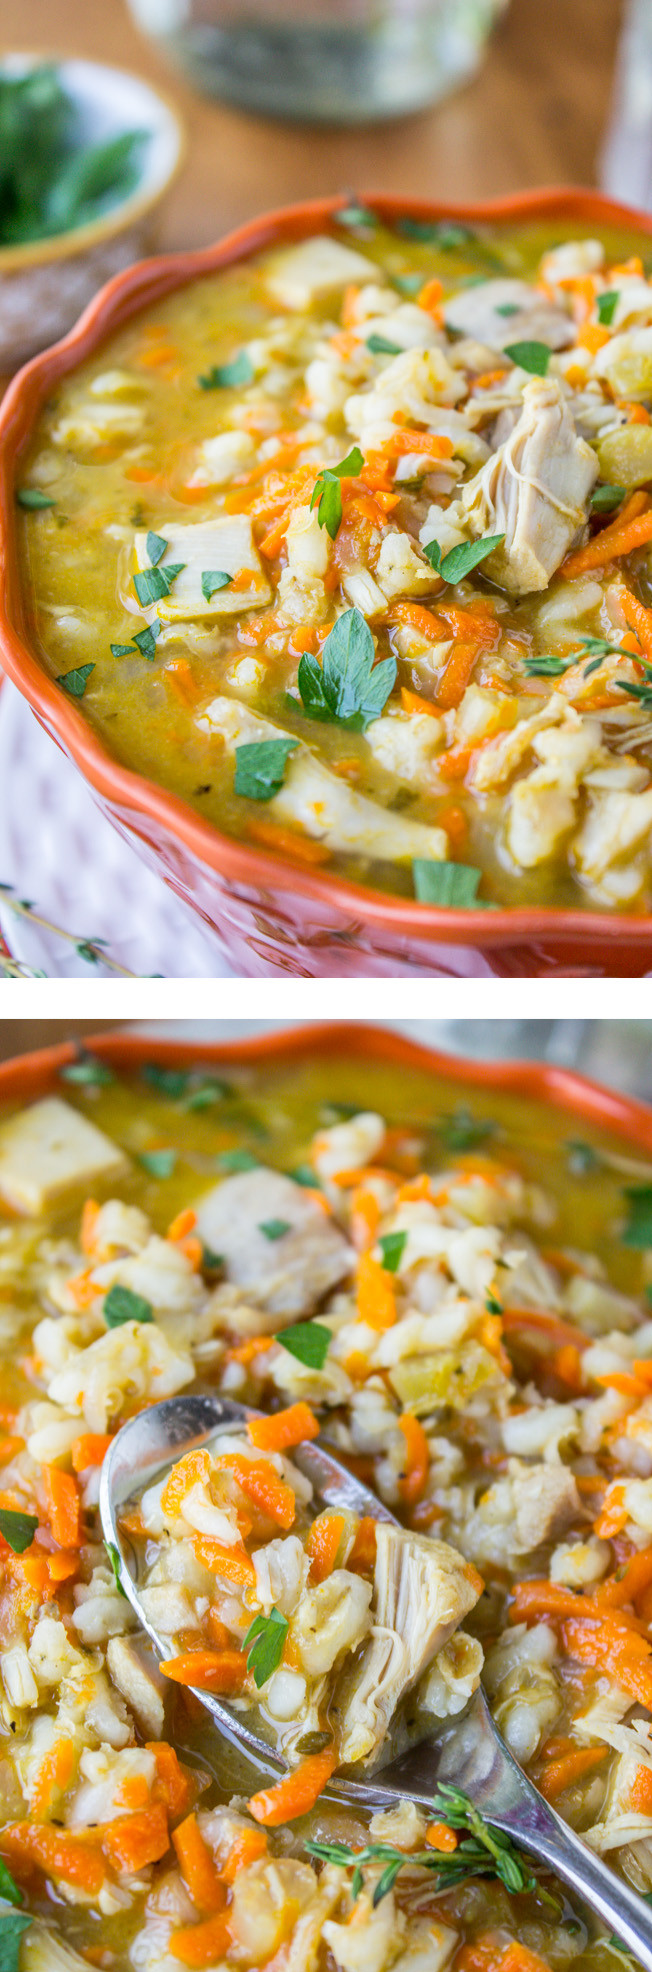 Turkey Soup From Leftover  Home Recipes BBQ Potluck Recipes About Contact Press